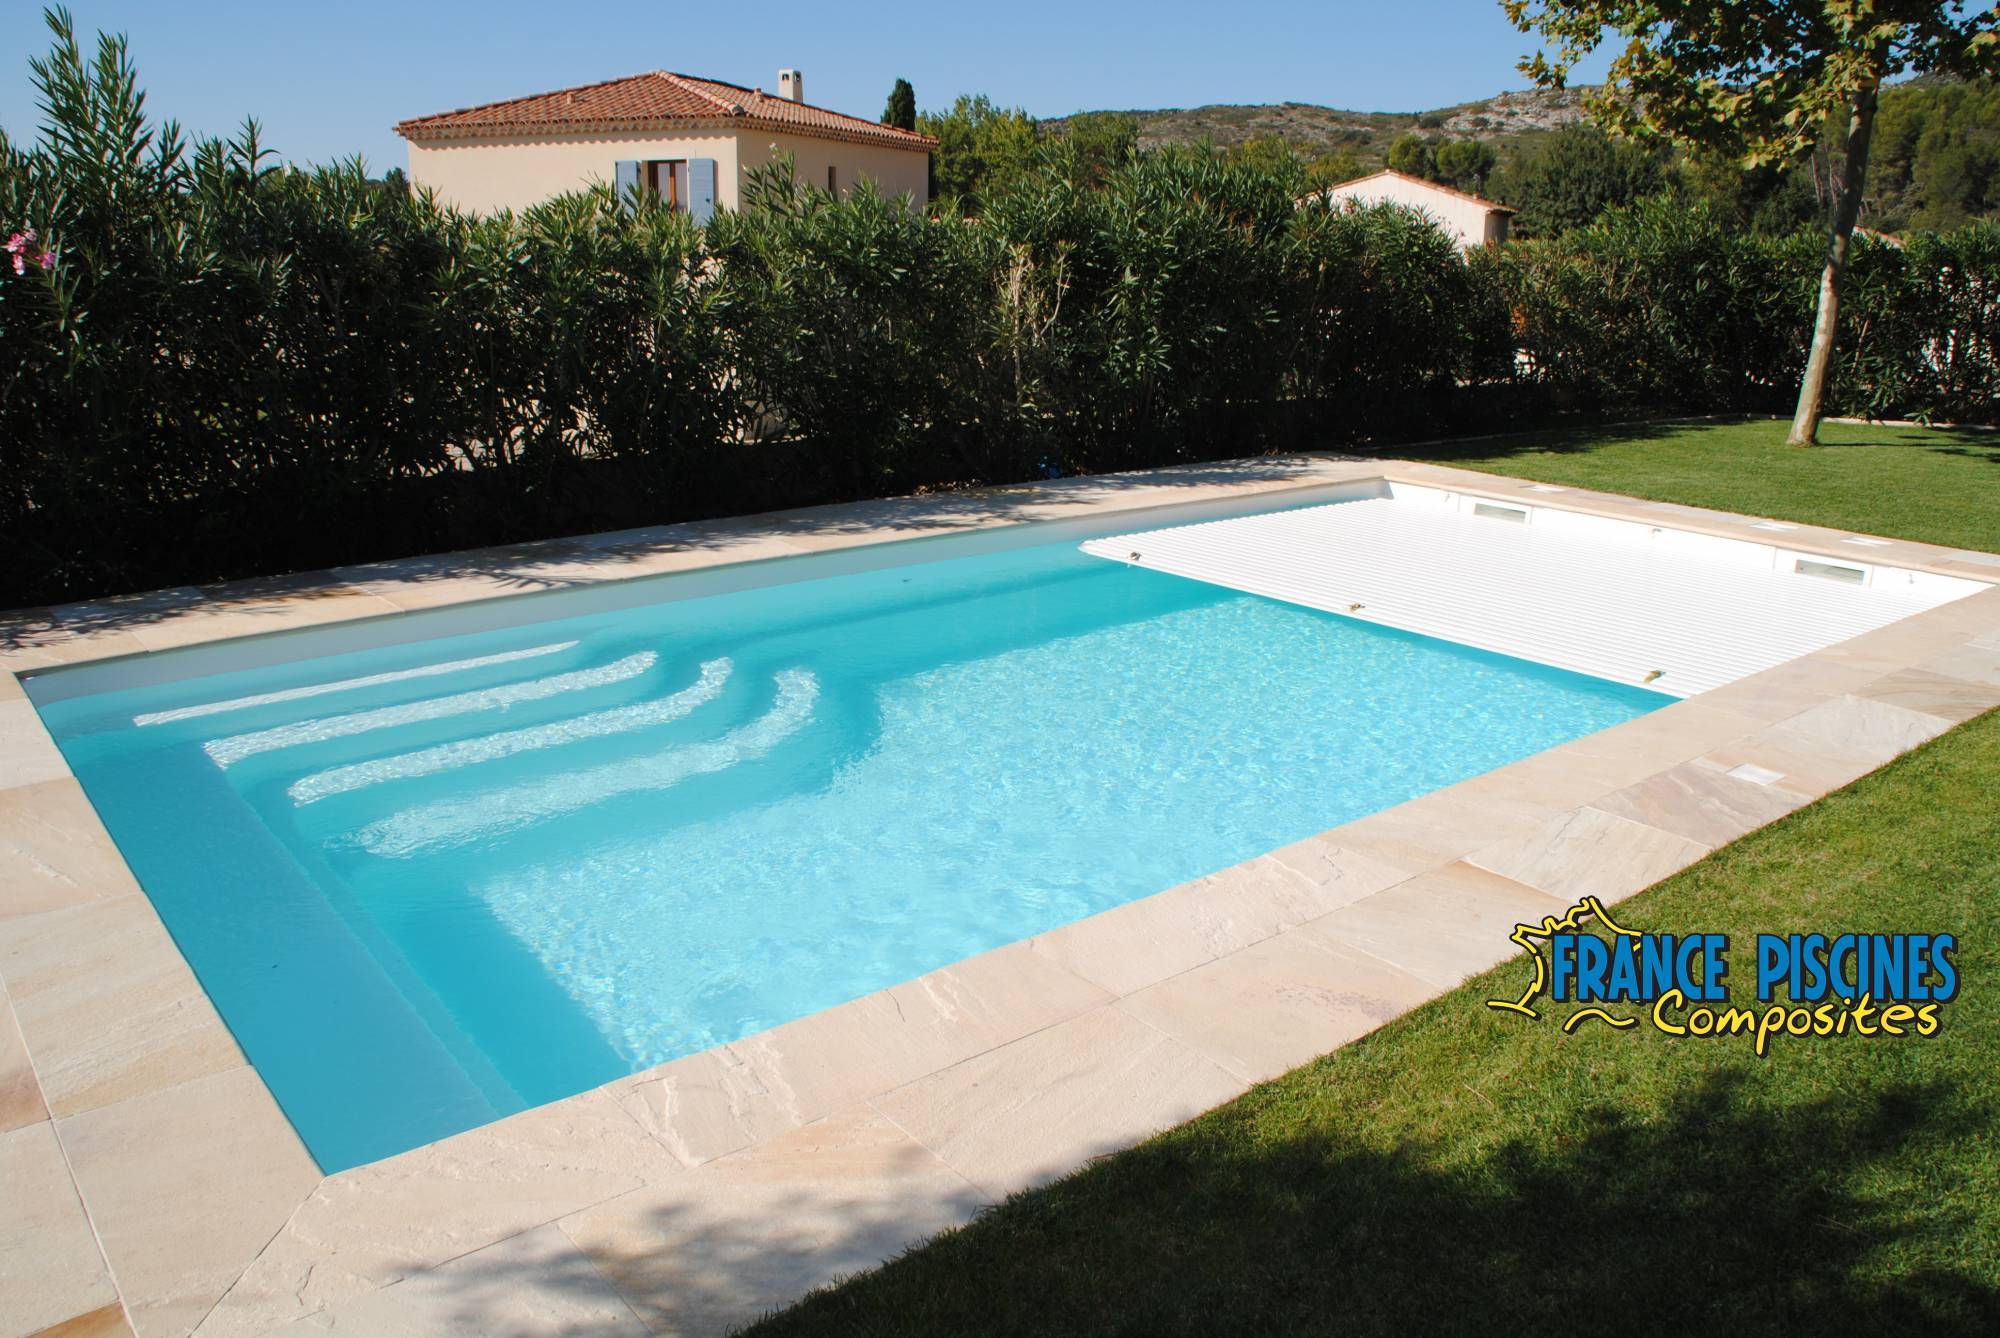 Piscine polyester piscine coque polyester rectangulaire for Piscine haricot prix